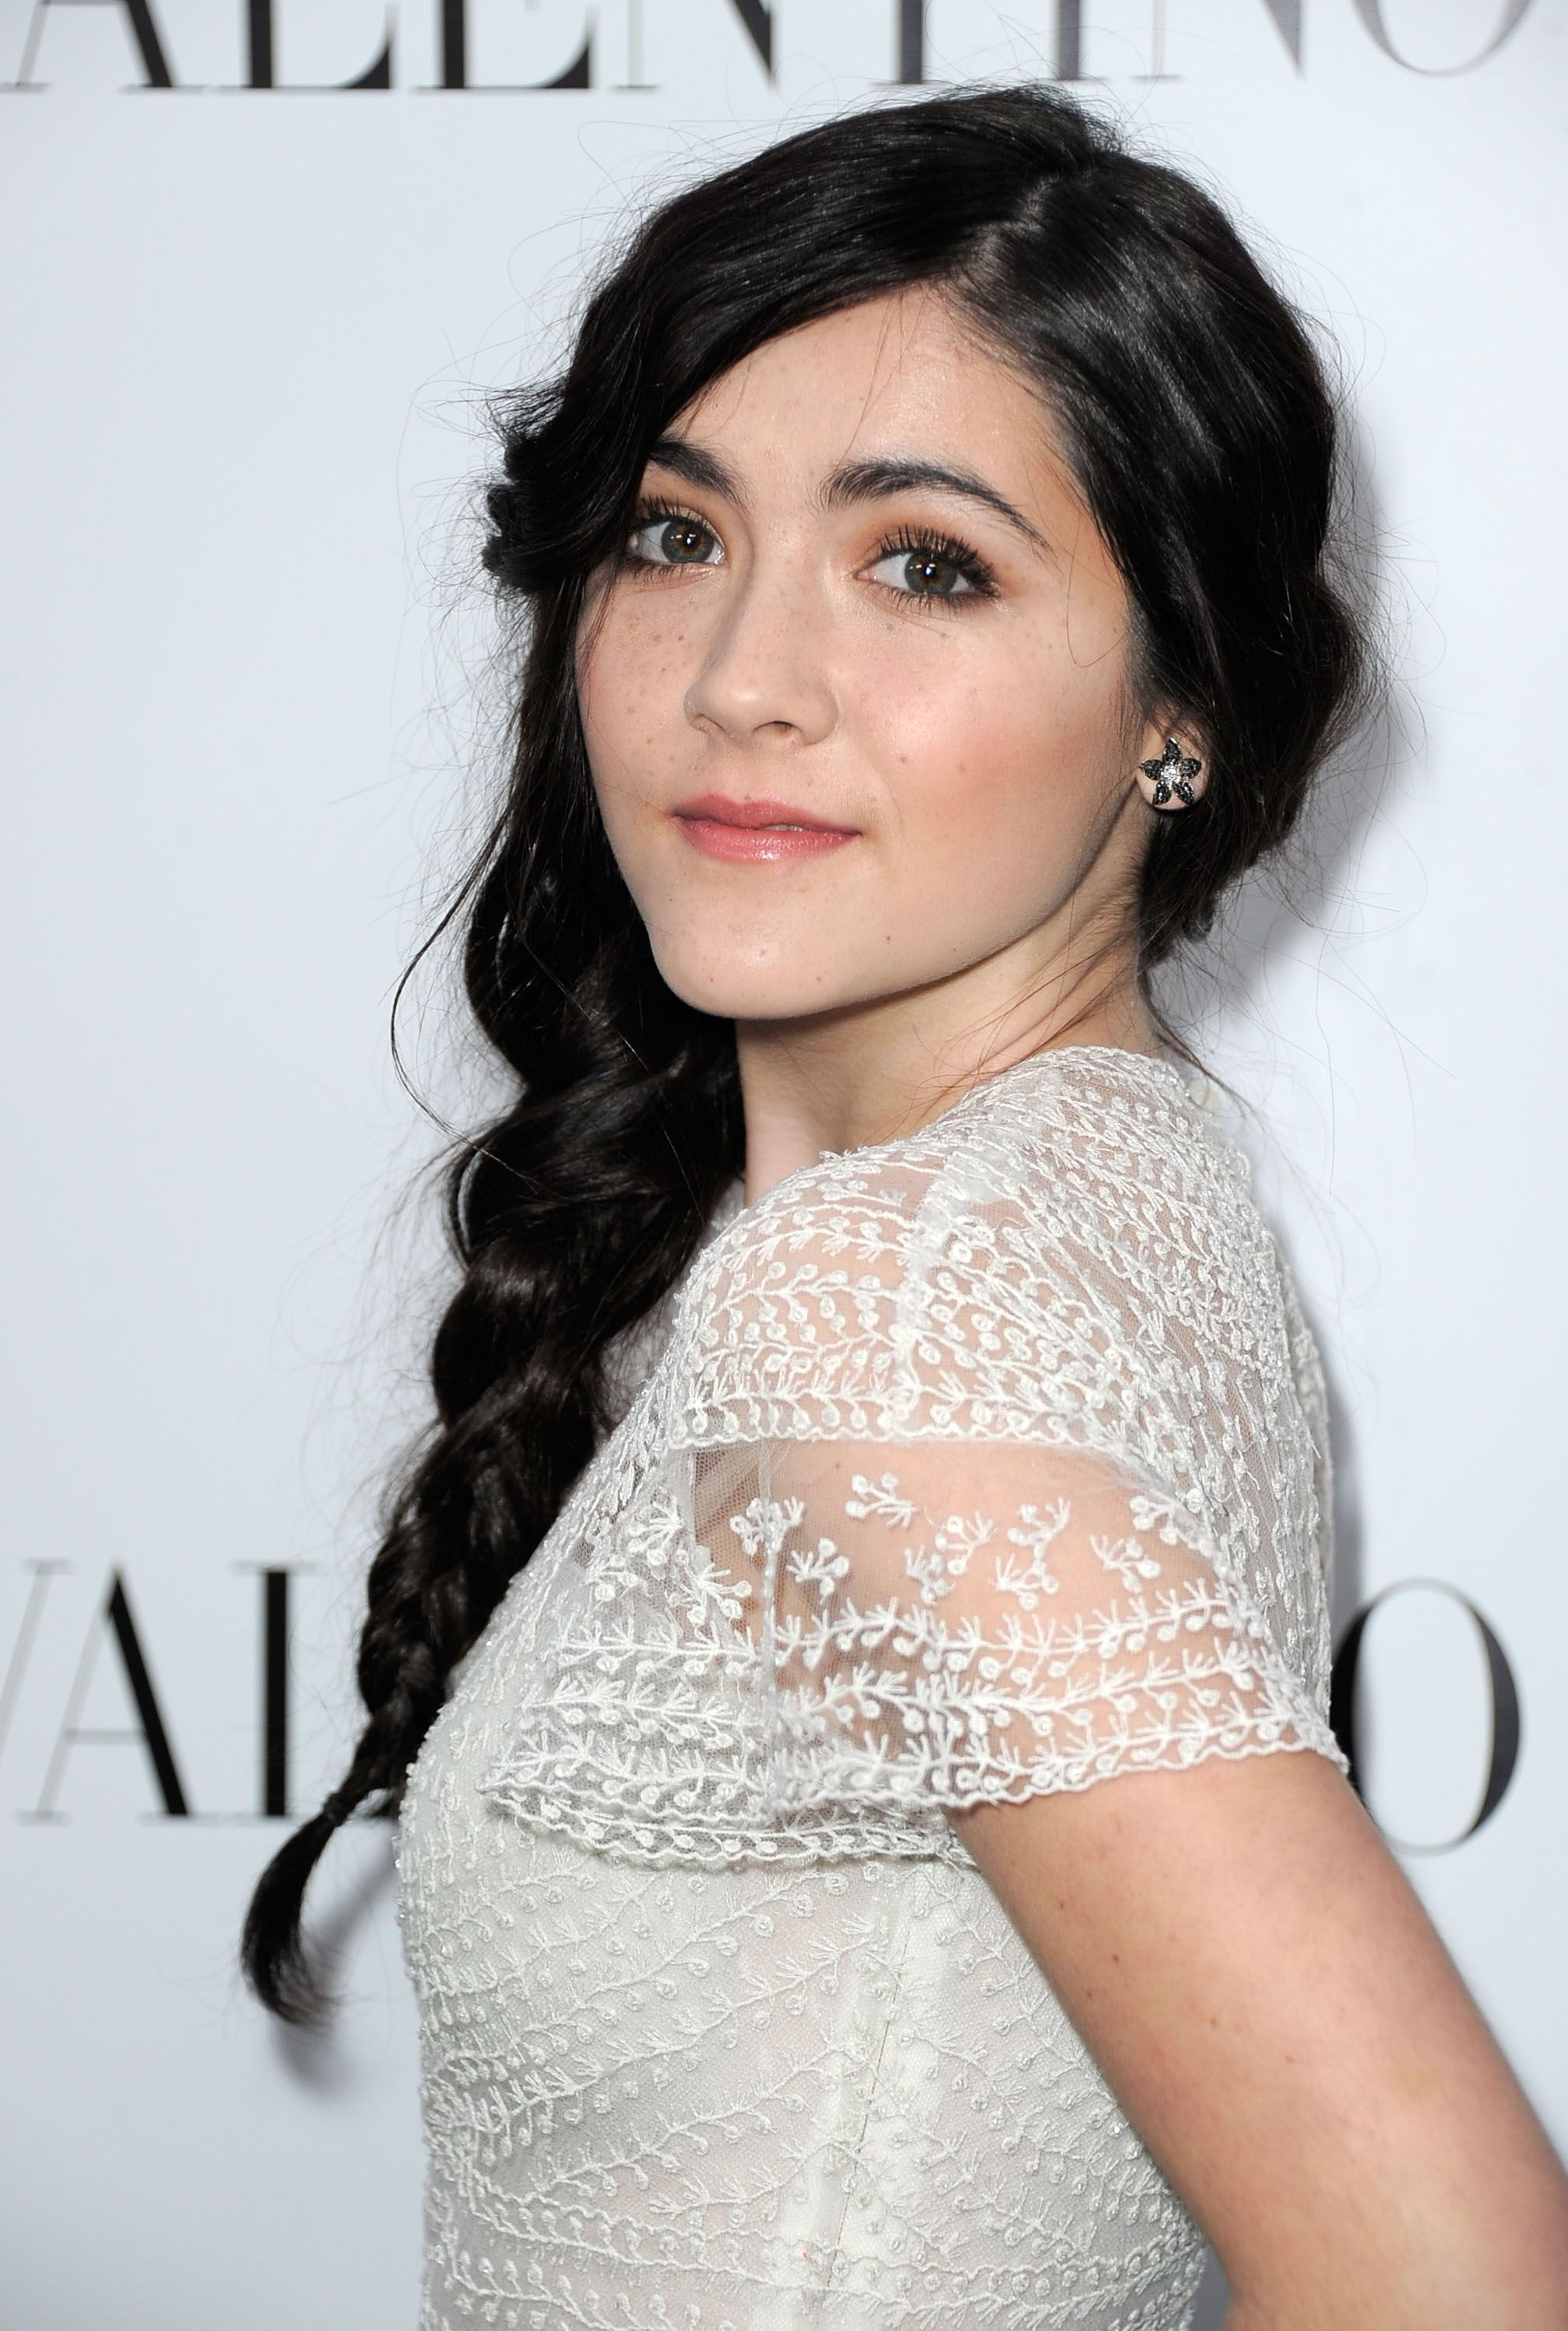 Actress Isabelle Fuhrman (